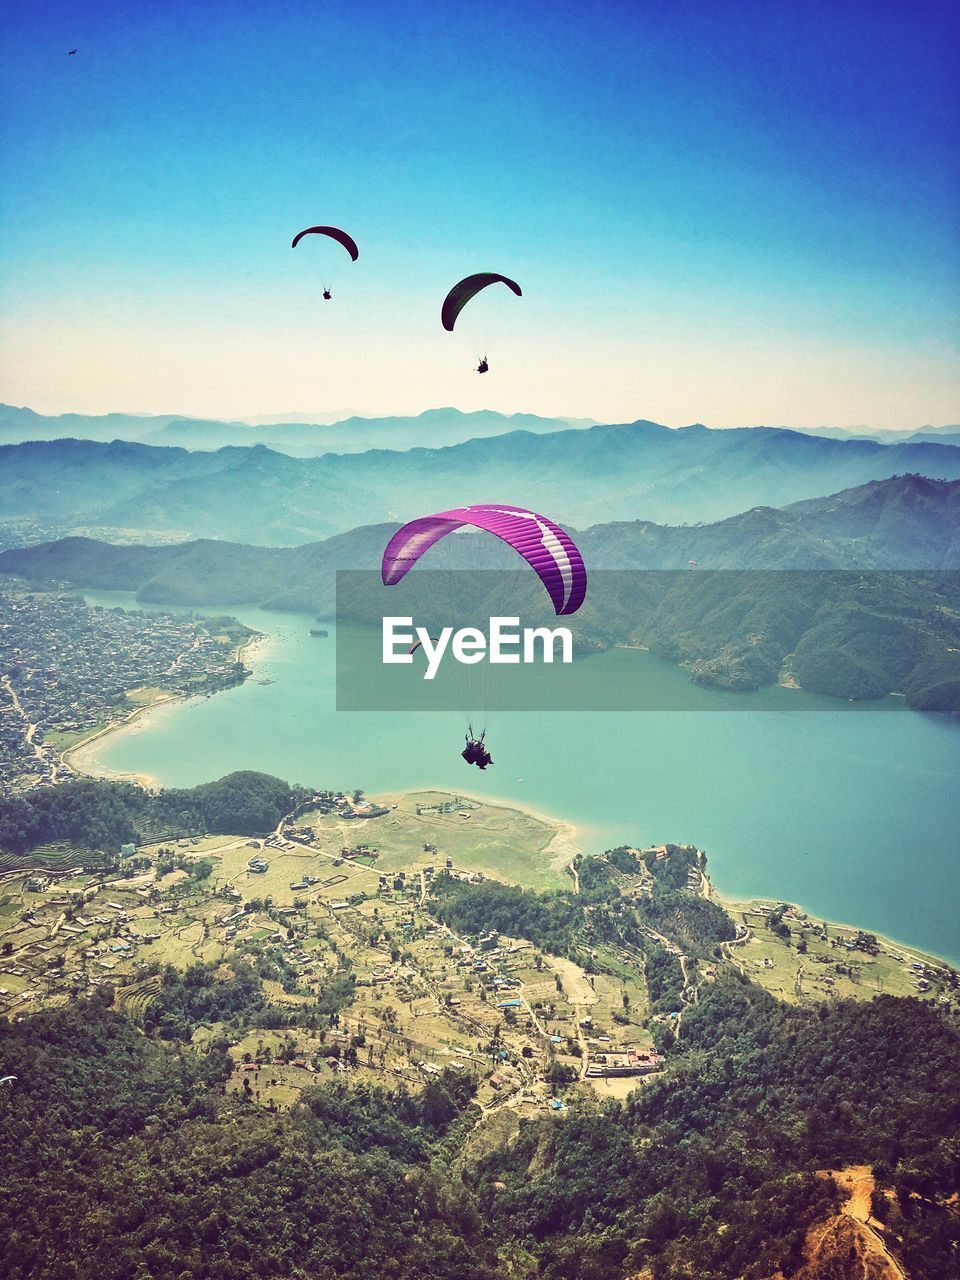 parachute, adventure, mountain, scenics, mid-air, nature, extreme sports, beauty in nature, paragliding, day, outdoors, leisure activity, clear sky, sky, real people, tranquil scene, mountain range, tranquility, landscape, flying, lifestyles, one person, water, people